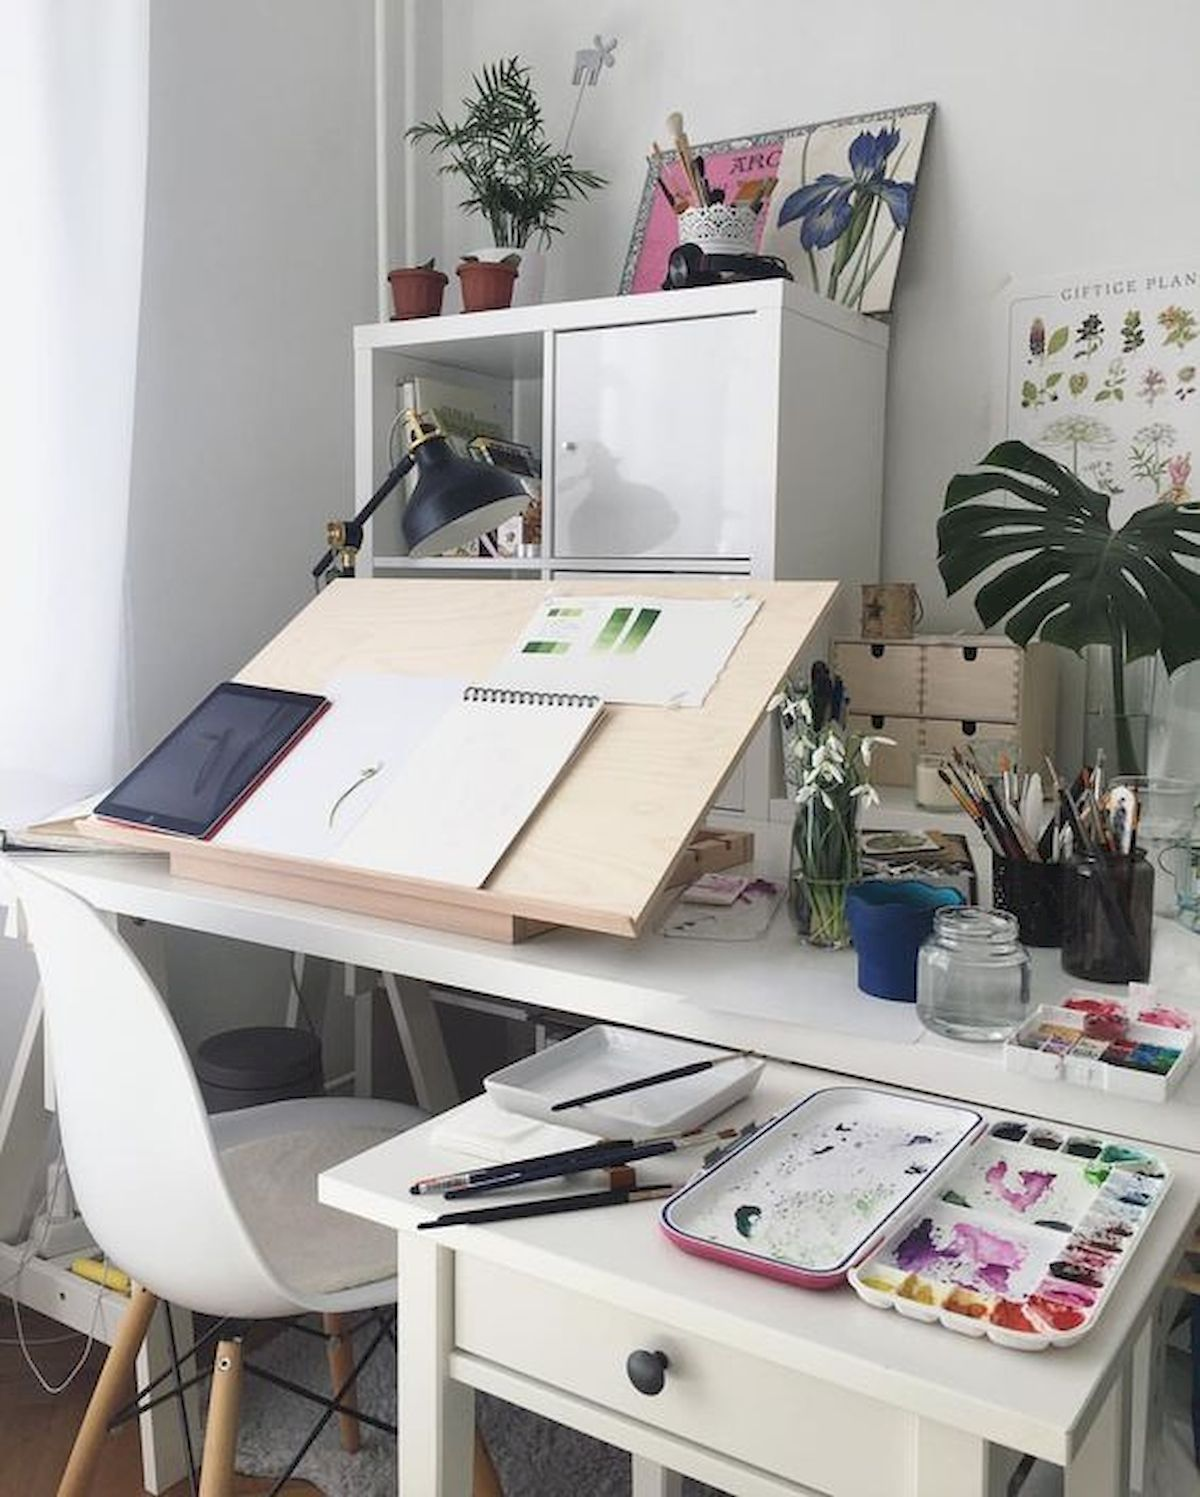 Pin By Mistery Artist On Workplace Room Decor Studio Room